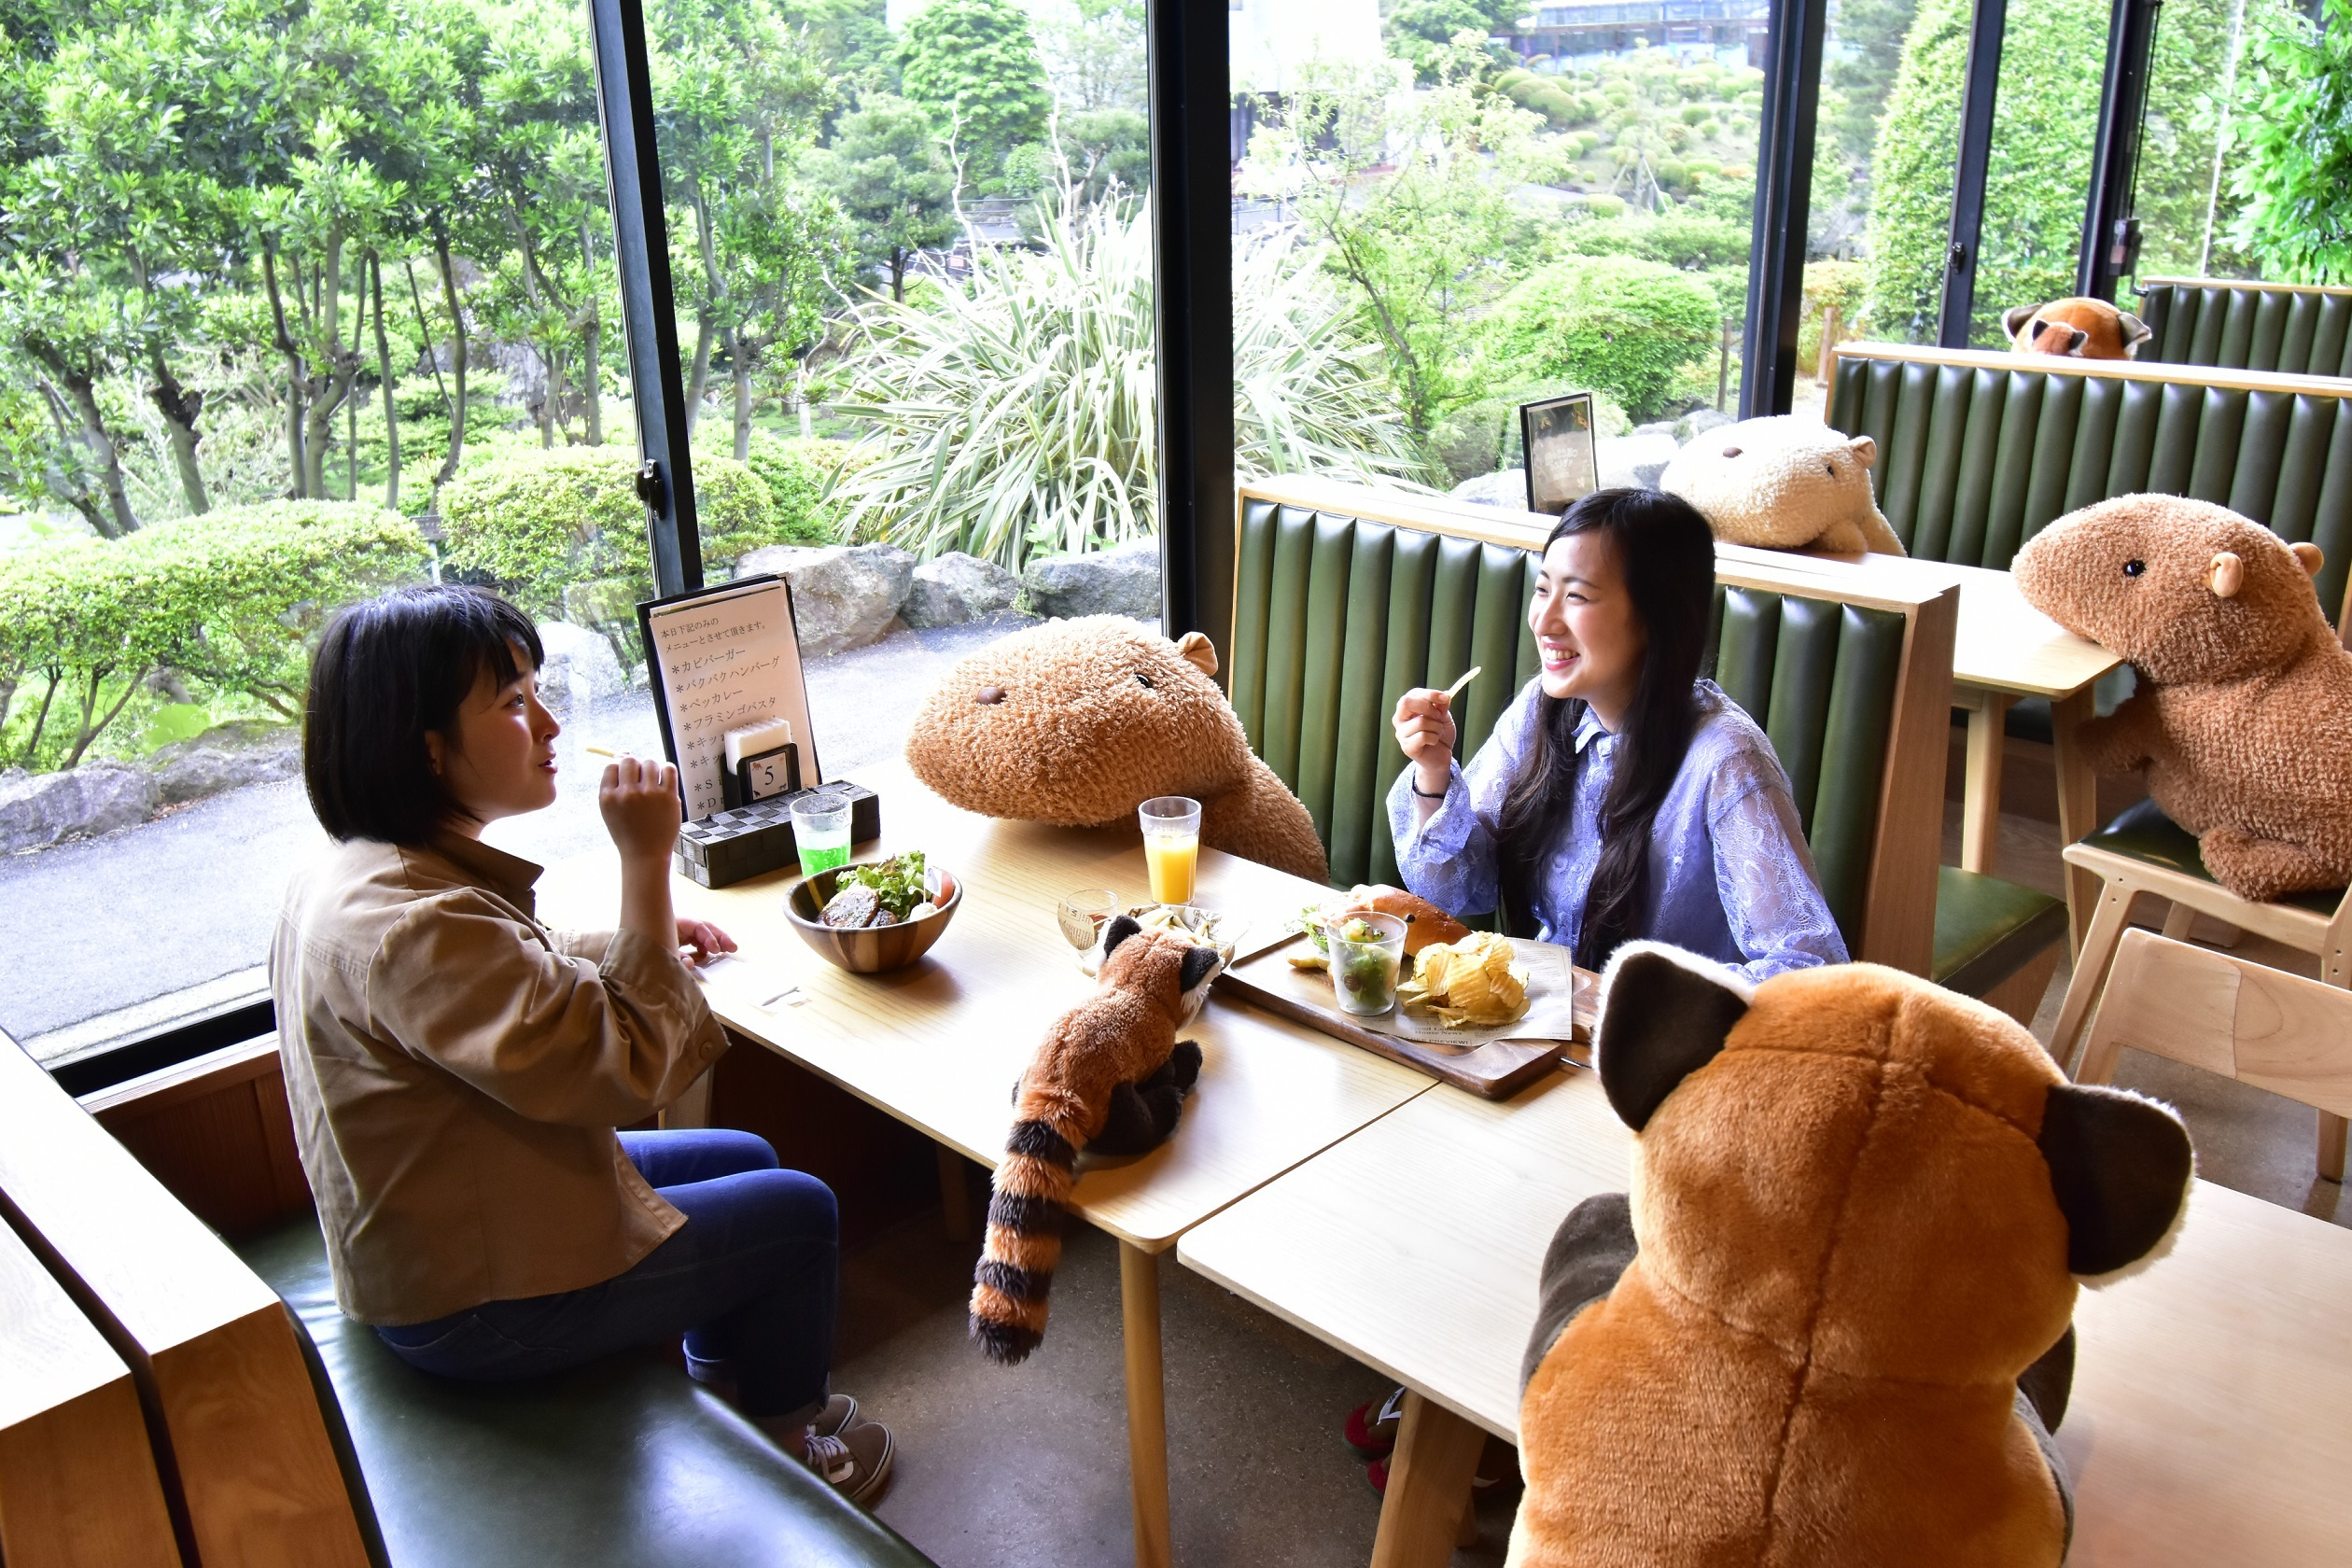 This Japanese café is enforcing social distancing with adorable soft toys